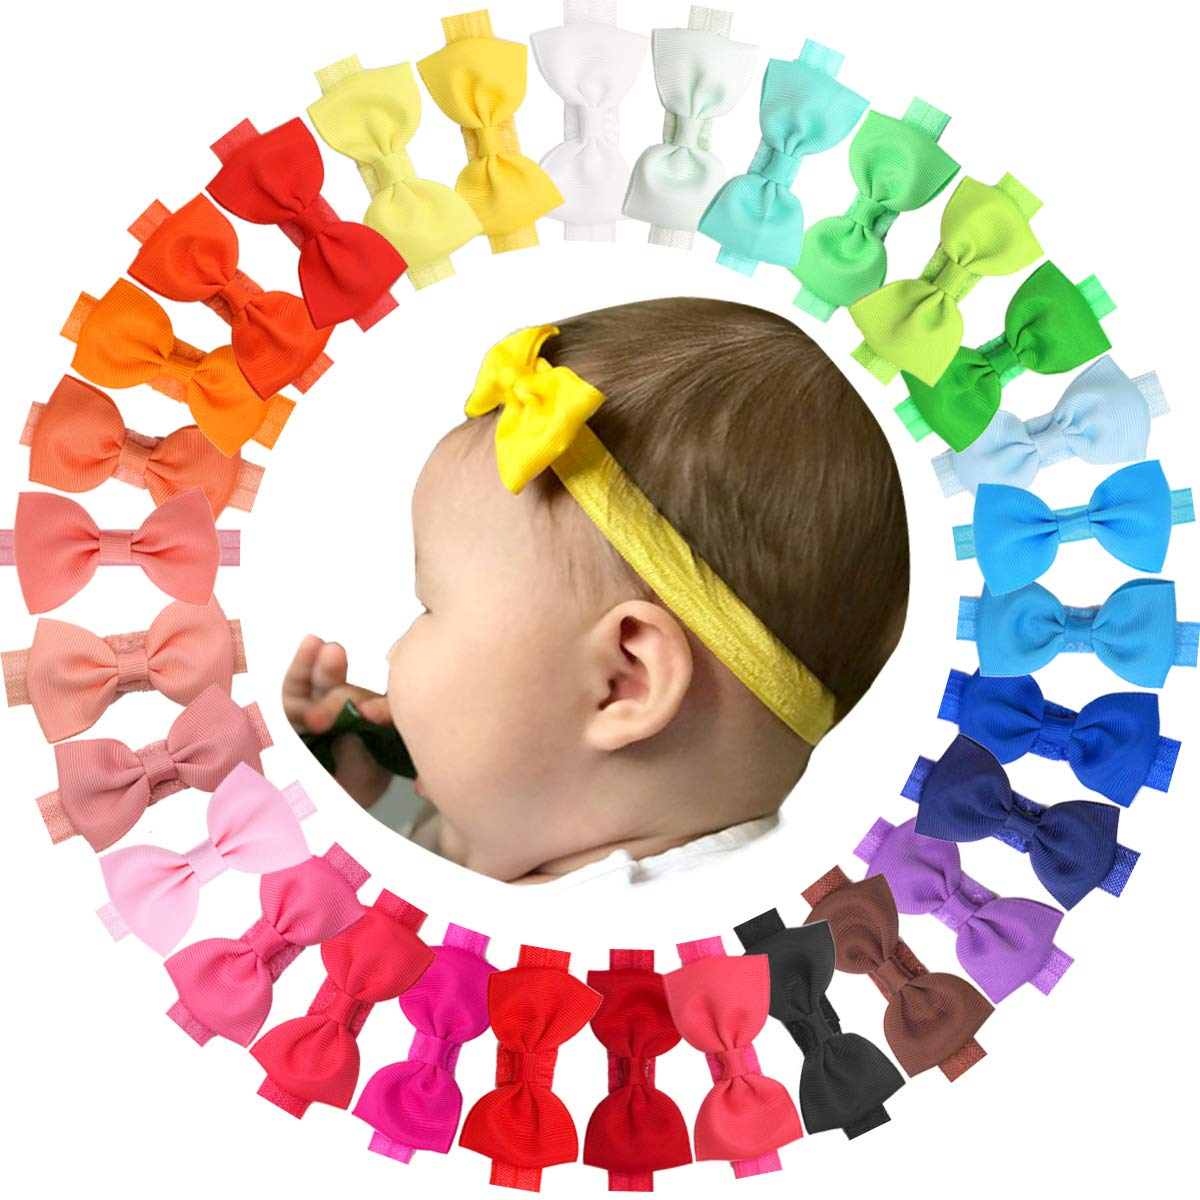 JOYOYO 30 Colors Baby Girls Headbands Grosgrain Ribbon Hair Bows Soft Hair Band Accessories for Newborn Infant Toddlers (Baby Bows)